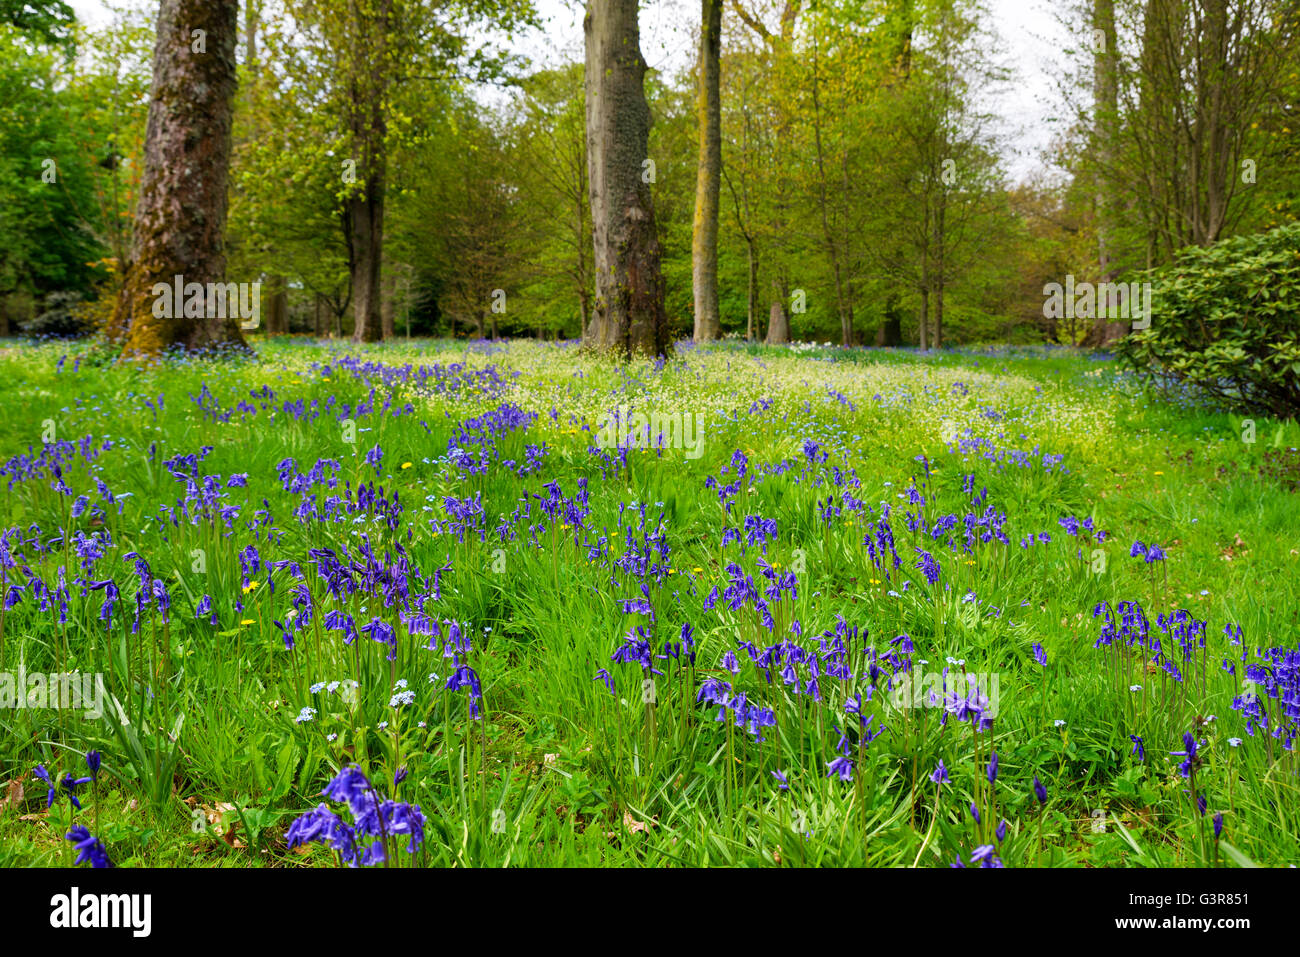 Bluebells (Hyacinthoides non-scripta) in a wood at Floors Castle, Kelso, Scottish Borders, Scotland, UK - Stock Image